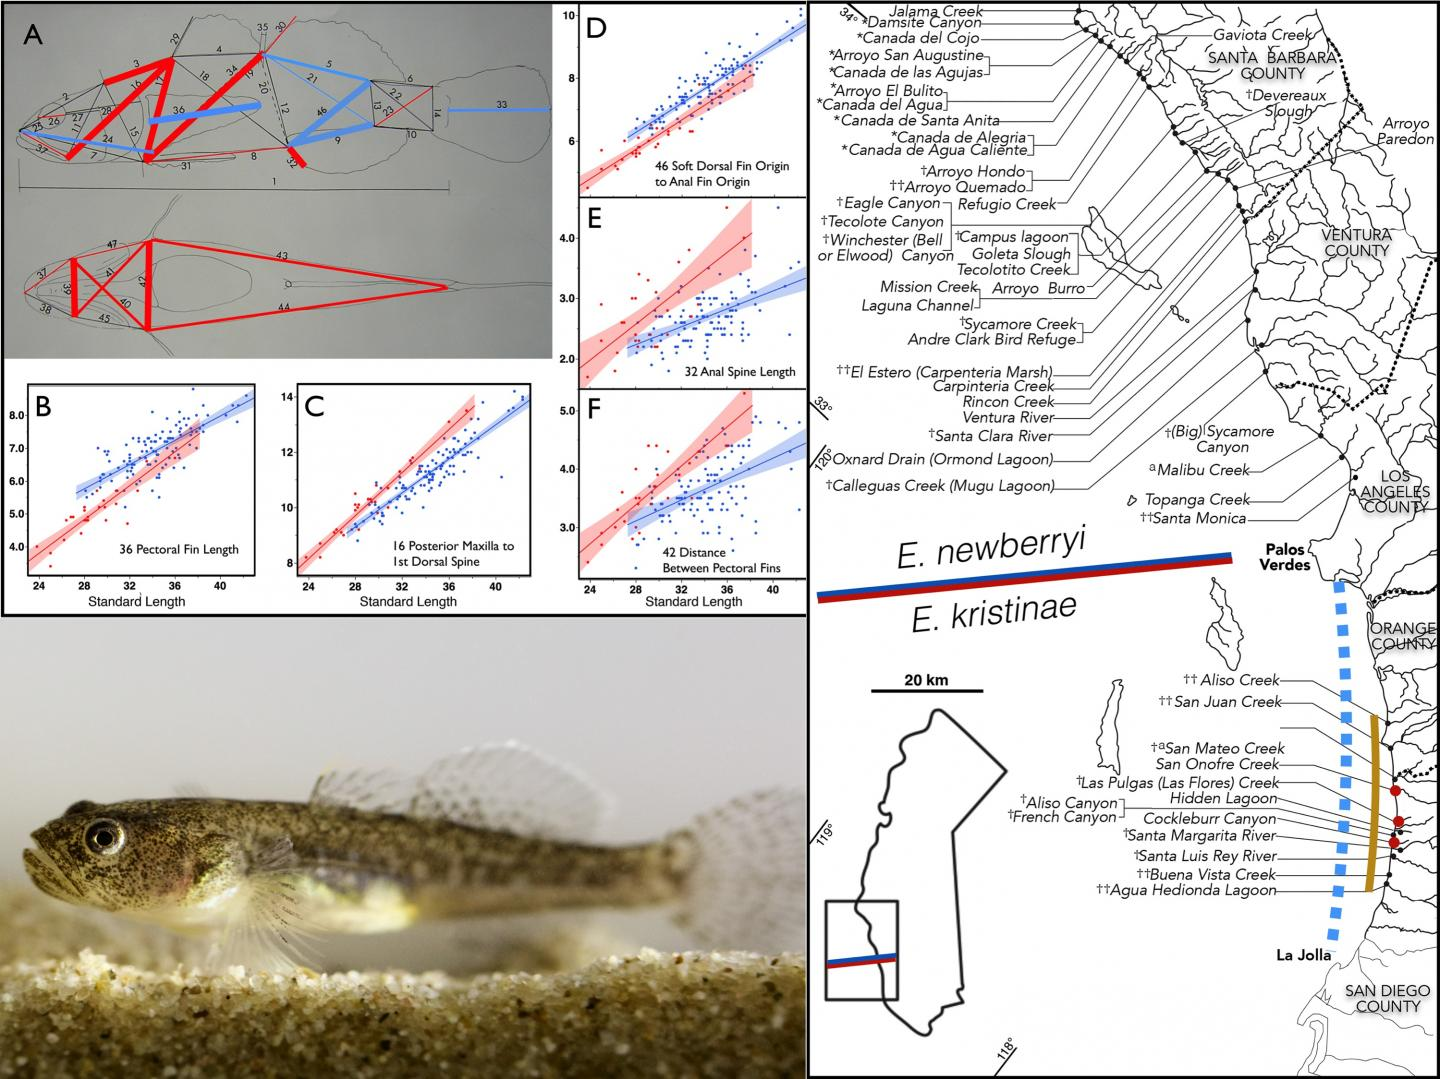 Morphological Analysis Suggests Endangered Goby Is New Species